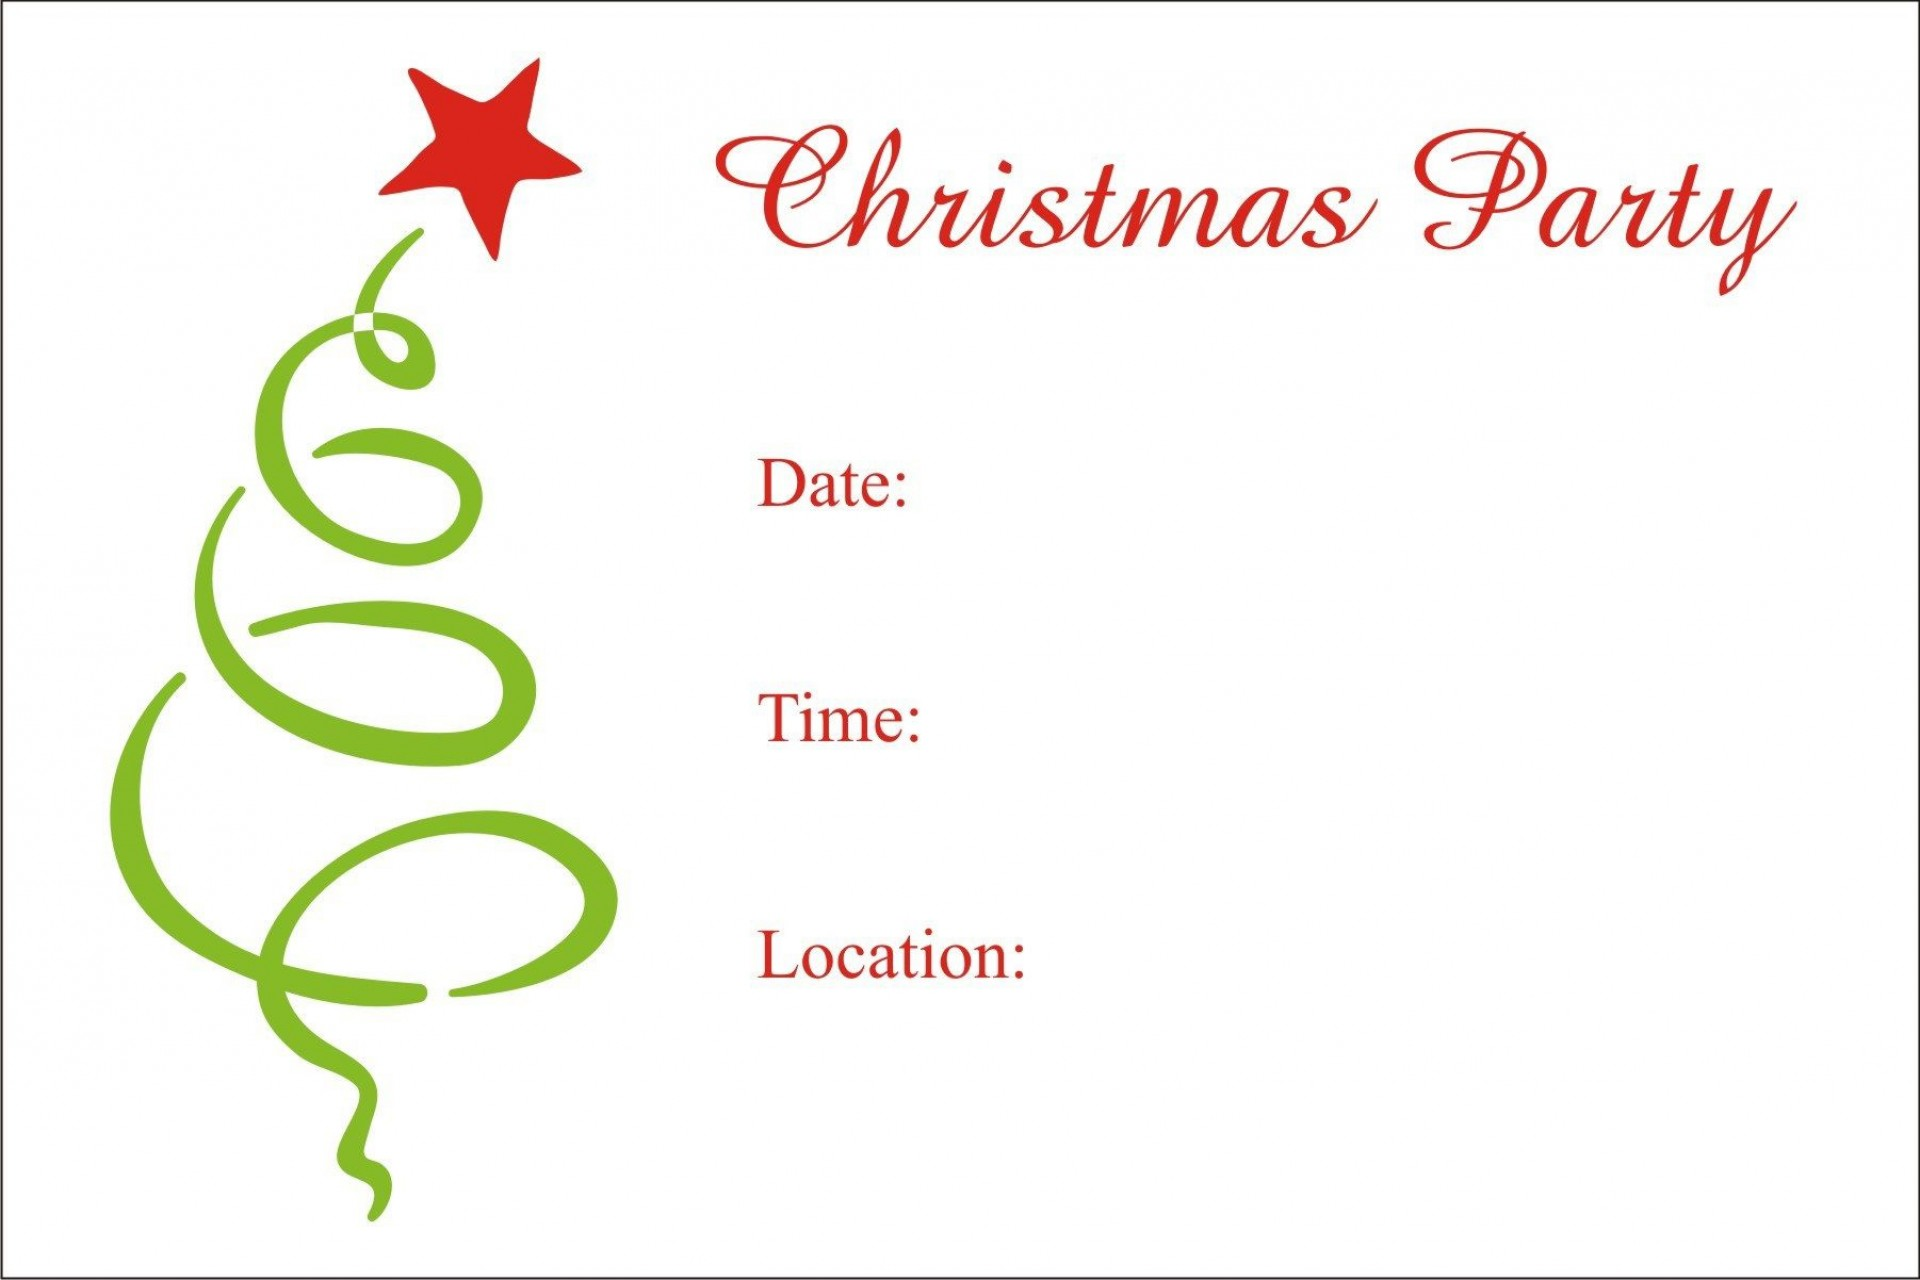 008 Staggering Xma Party Invite Template Free Picture  Holiday Invitation Word Download Christma1920